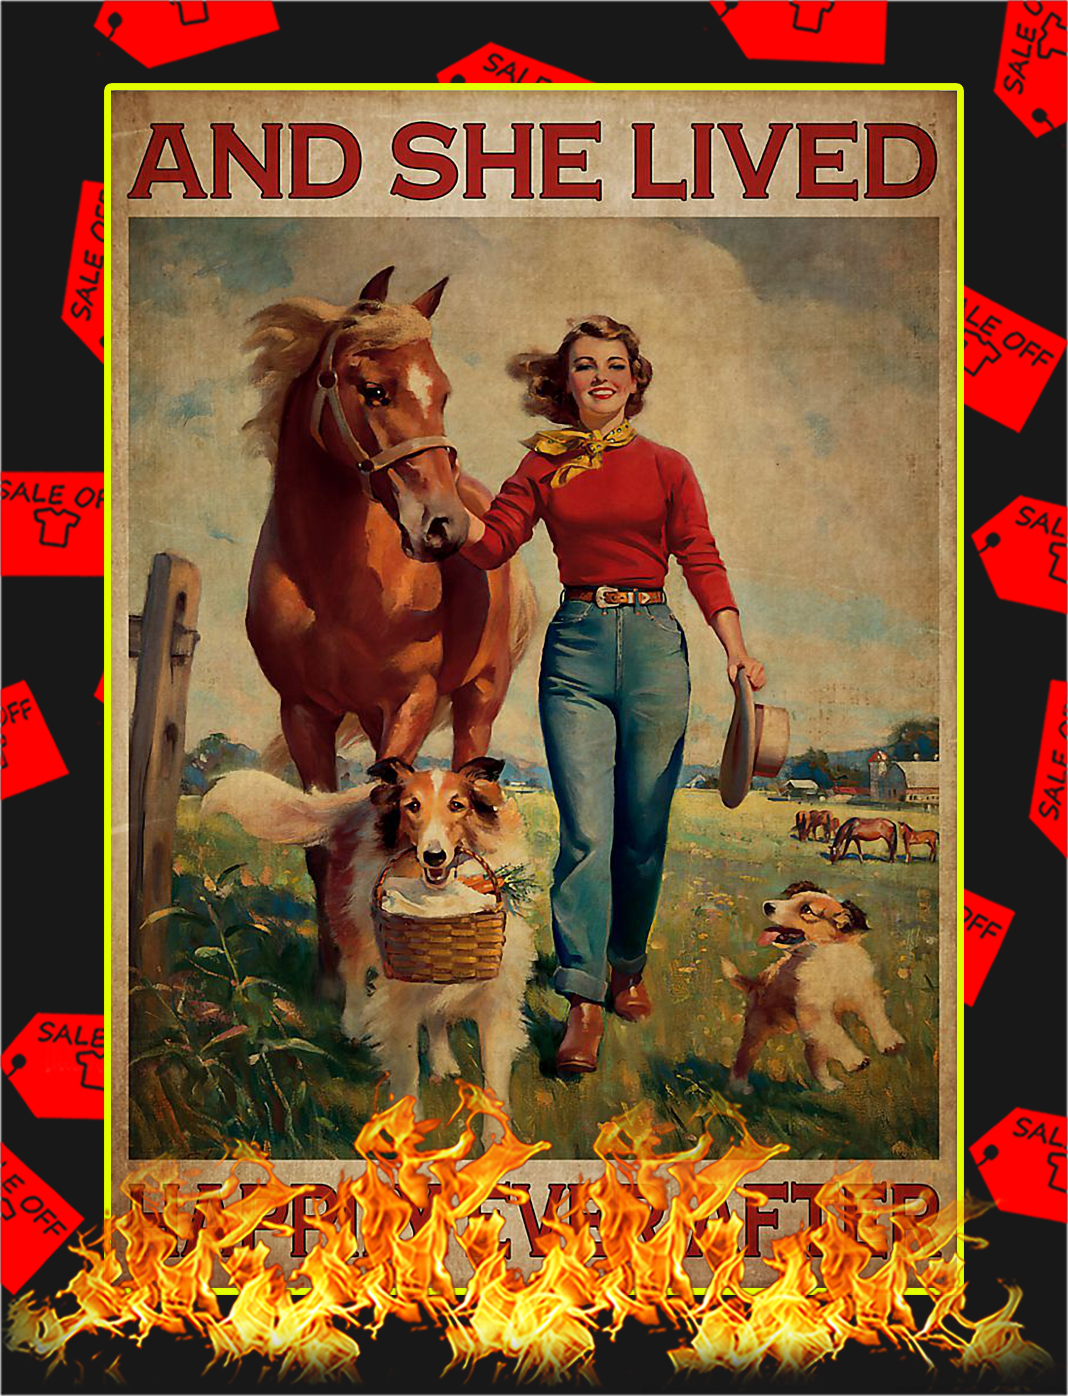 Girl with horse and dog lived happily ever after poster